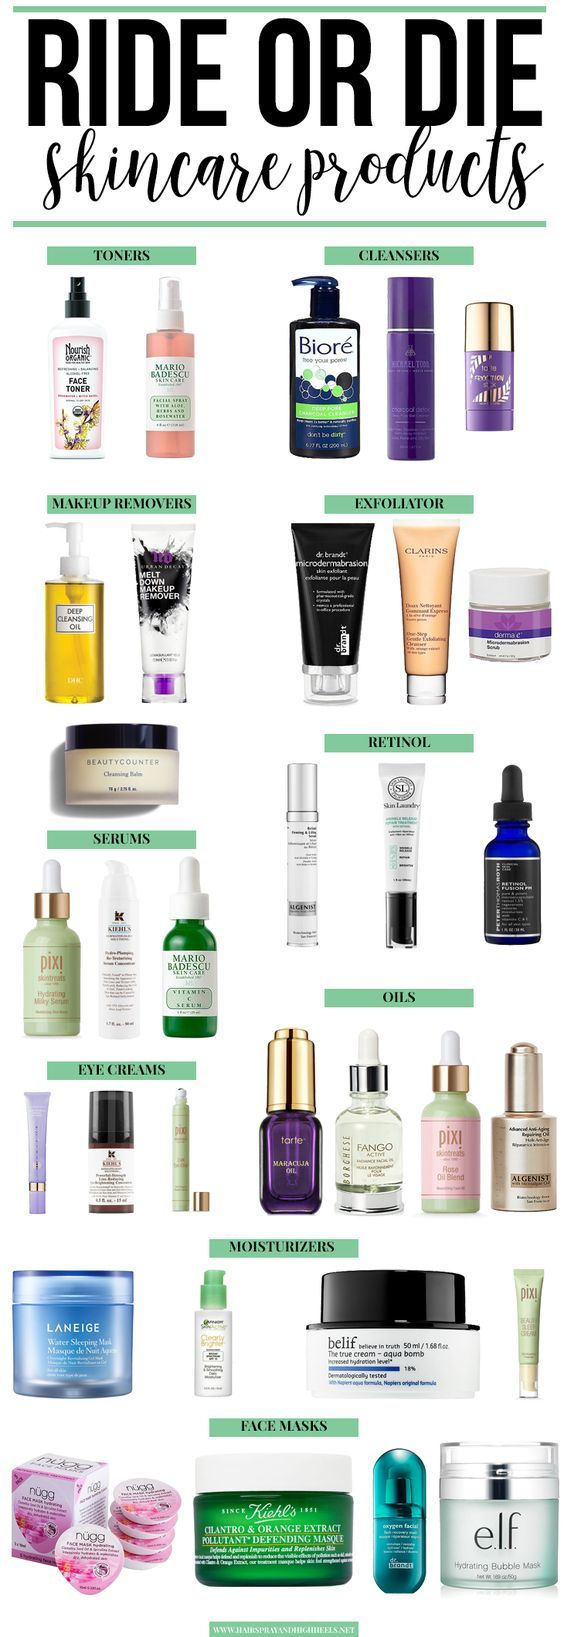 Are you in need of a new skincare routine? Check out the Ride or Die Skincare it...